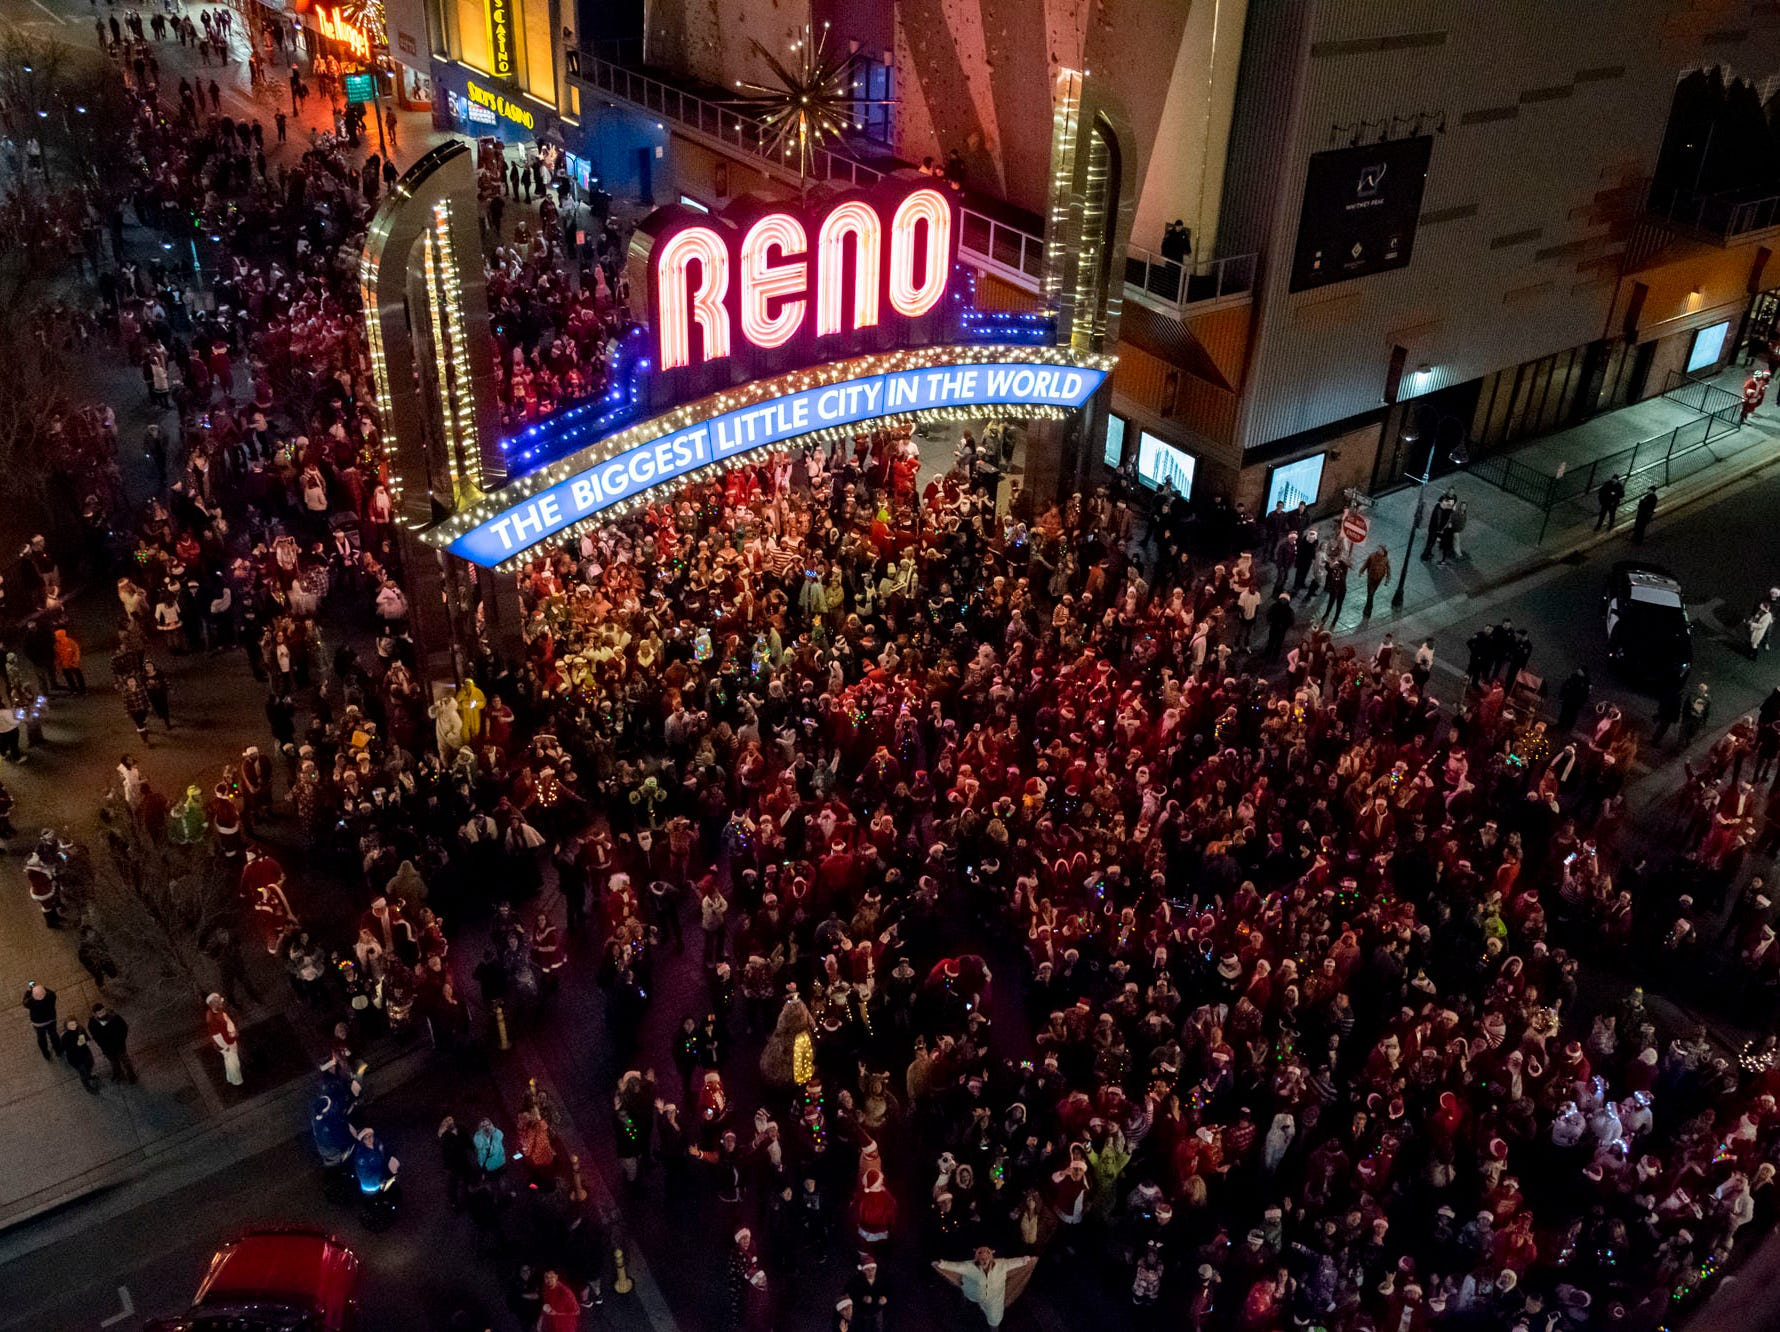 Elves, Christmas trees, and yes, Santas, get merry at the Reno Santa Pub Crawl on Saturday, Dec. 15, 2018.